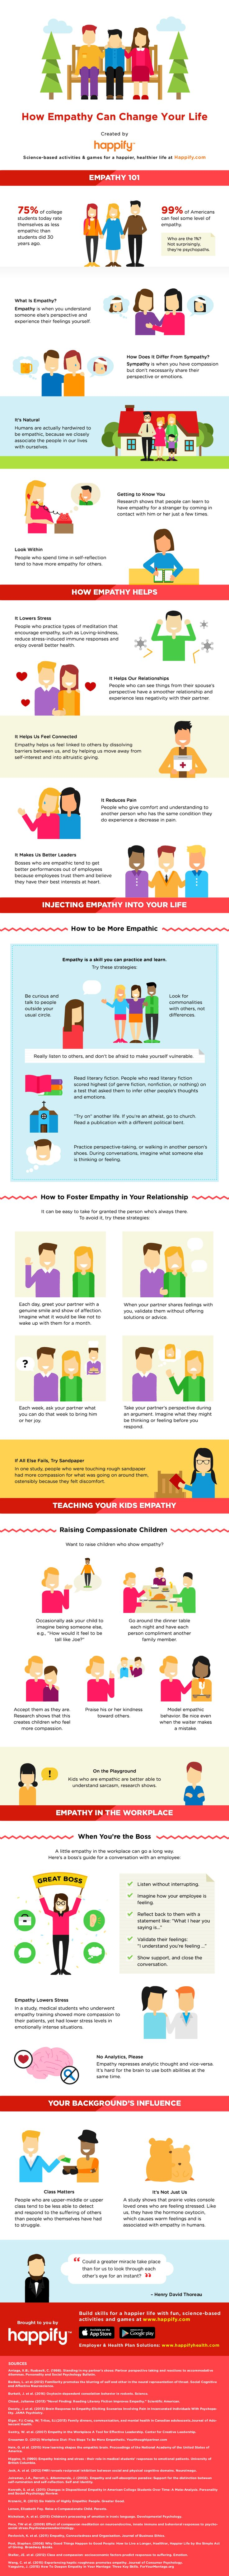 Psychology-Infographic-INFOGRAPHIC-Do-You-Have-Enough-Empathy-Why-Empathy-Matters-Happify-Daily Psychology Infographic : INFOGRAPHIC: Do You Have Enough Empathy? - Why Empathy Matters - Happify Daily